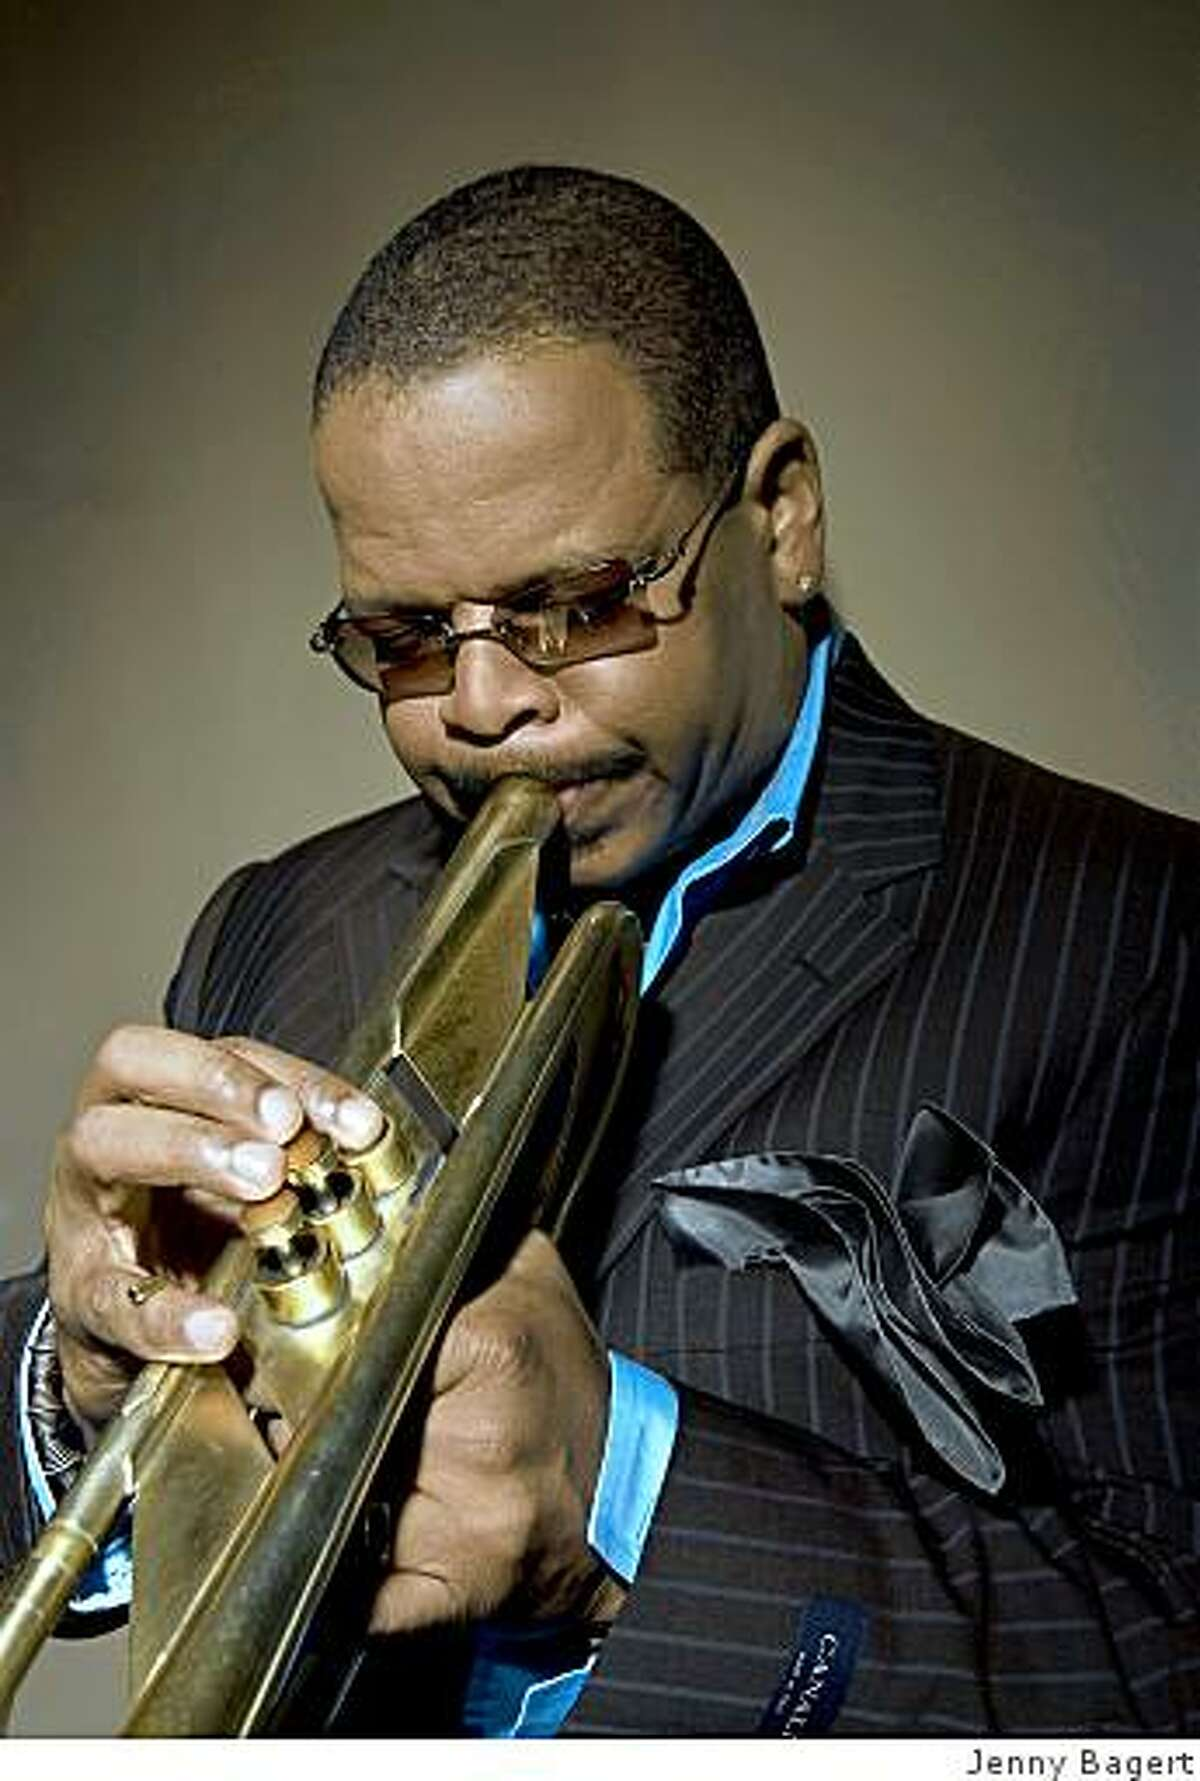 Trumpeter-composer Terence Blanchard